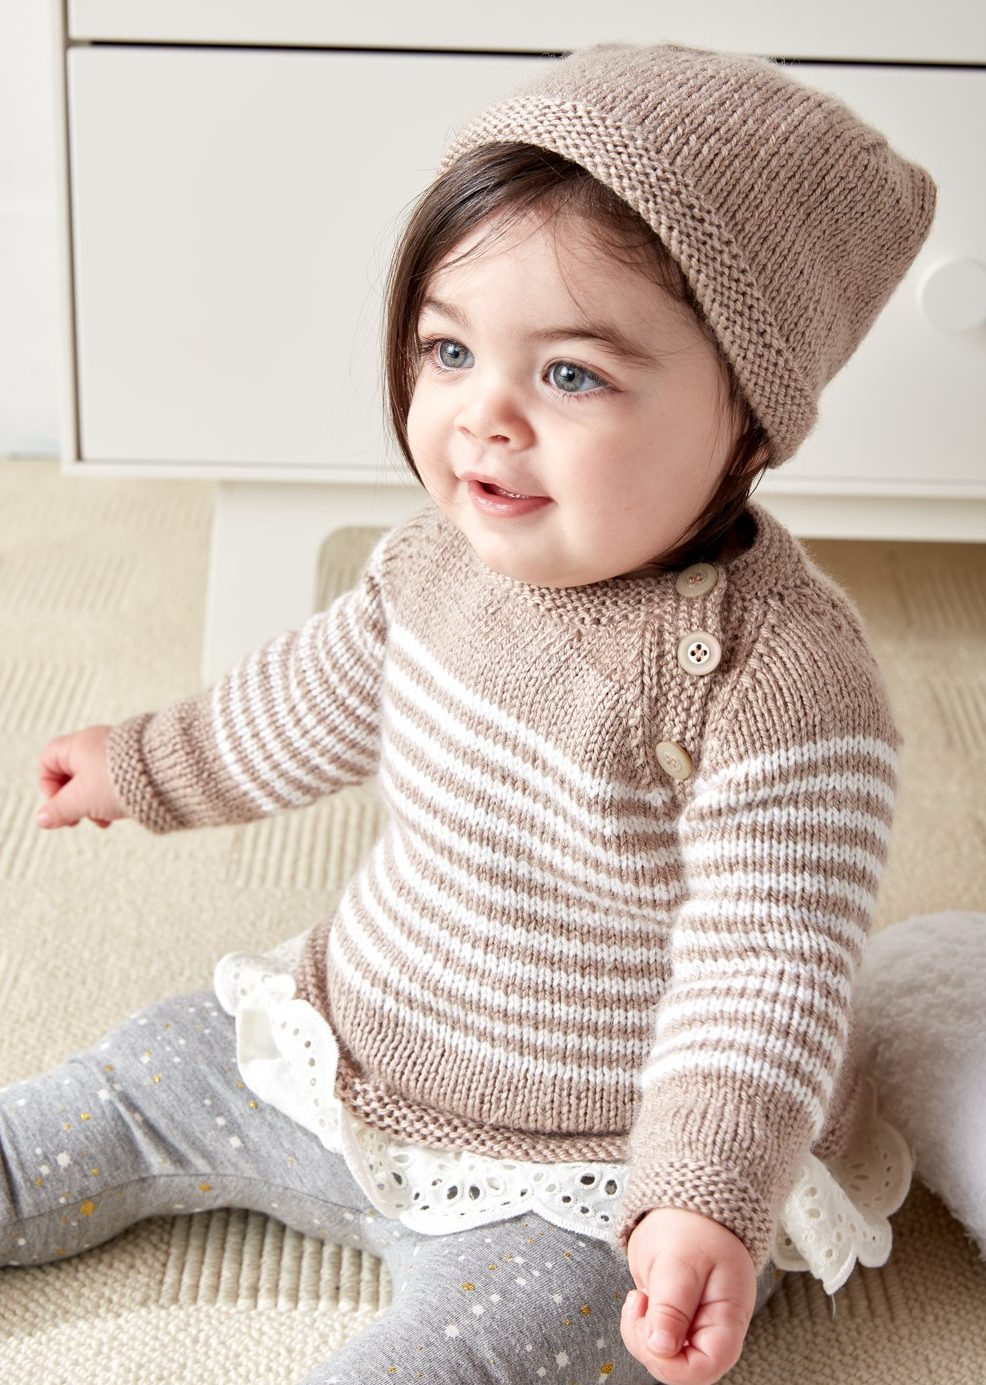 knitting patterns for babies free knitting pattern for easy wee stripes baby sweater and hat tzjewpg